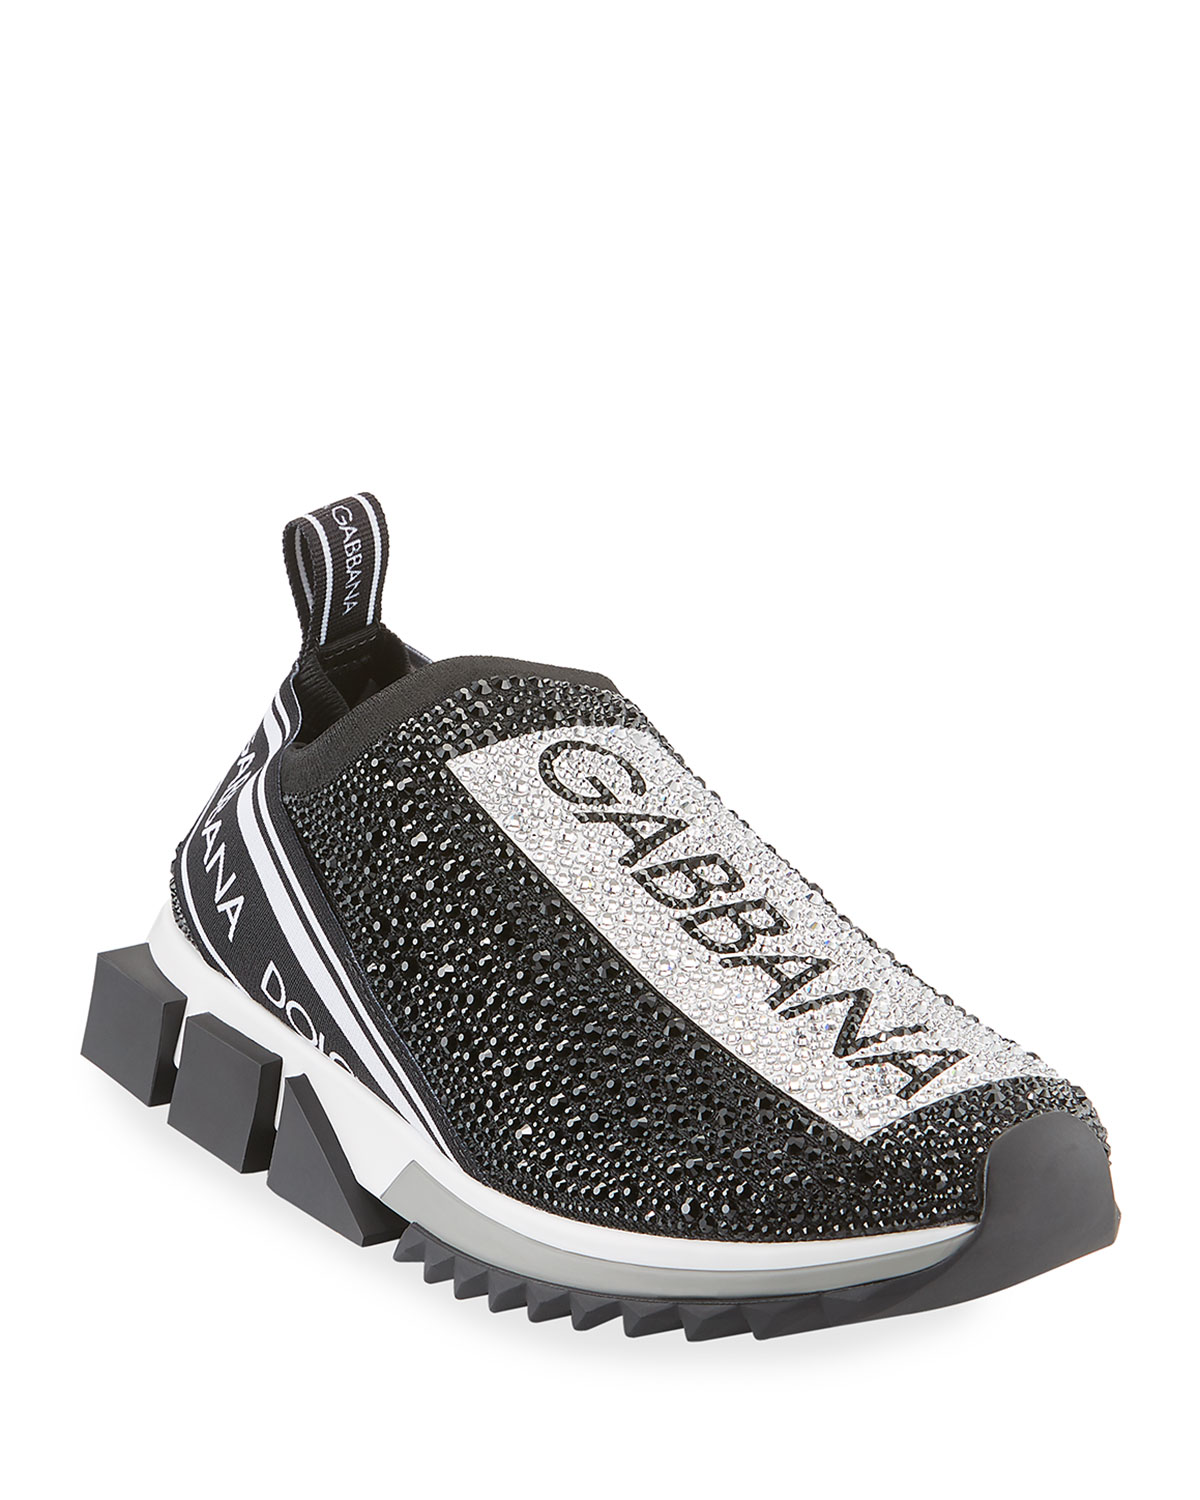 Dolce & Gabbana Sneakers MEN'S SORRENTO CRYSTAL-EMBELLISHED LOGO KNIT SNEAKERS